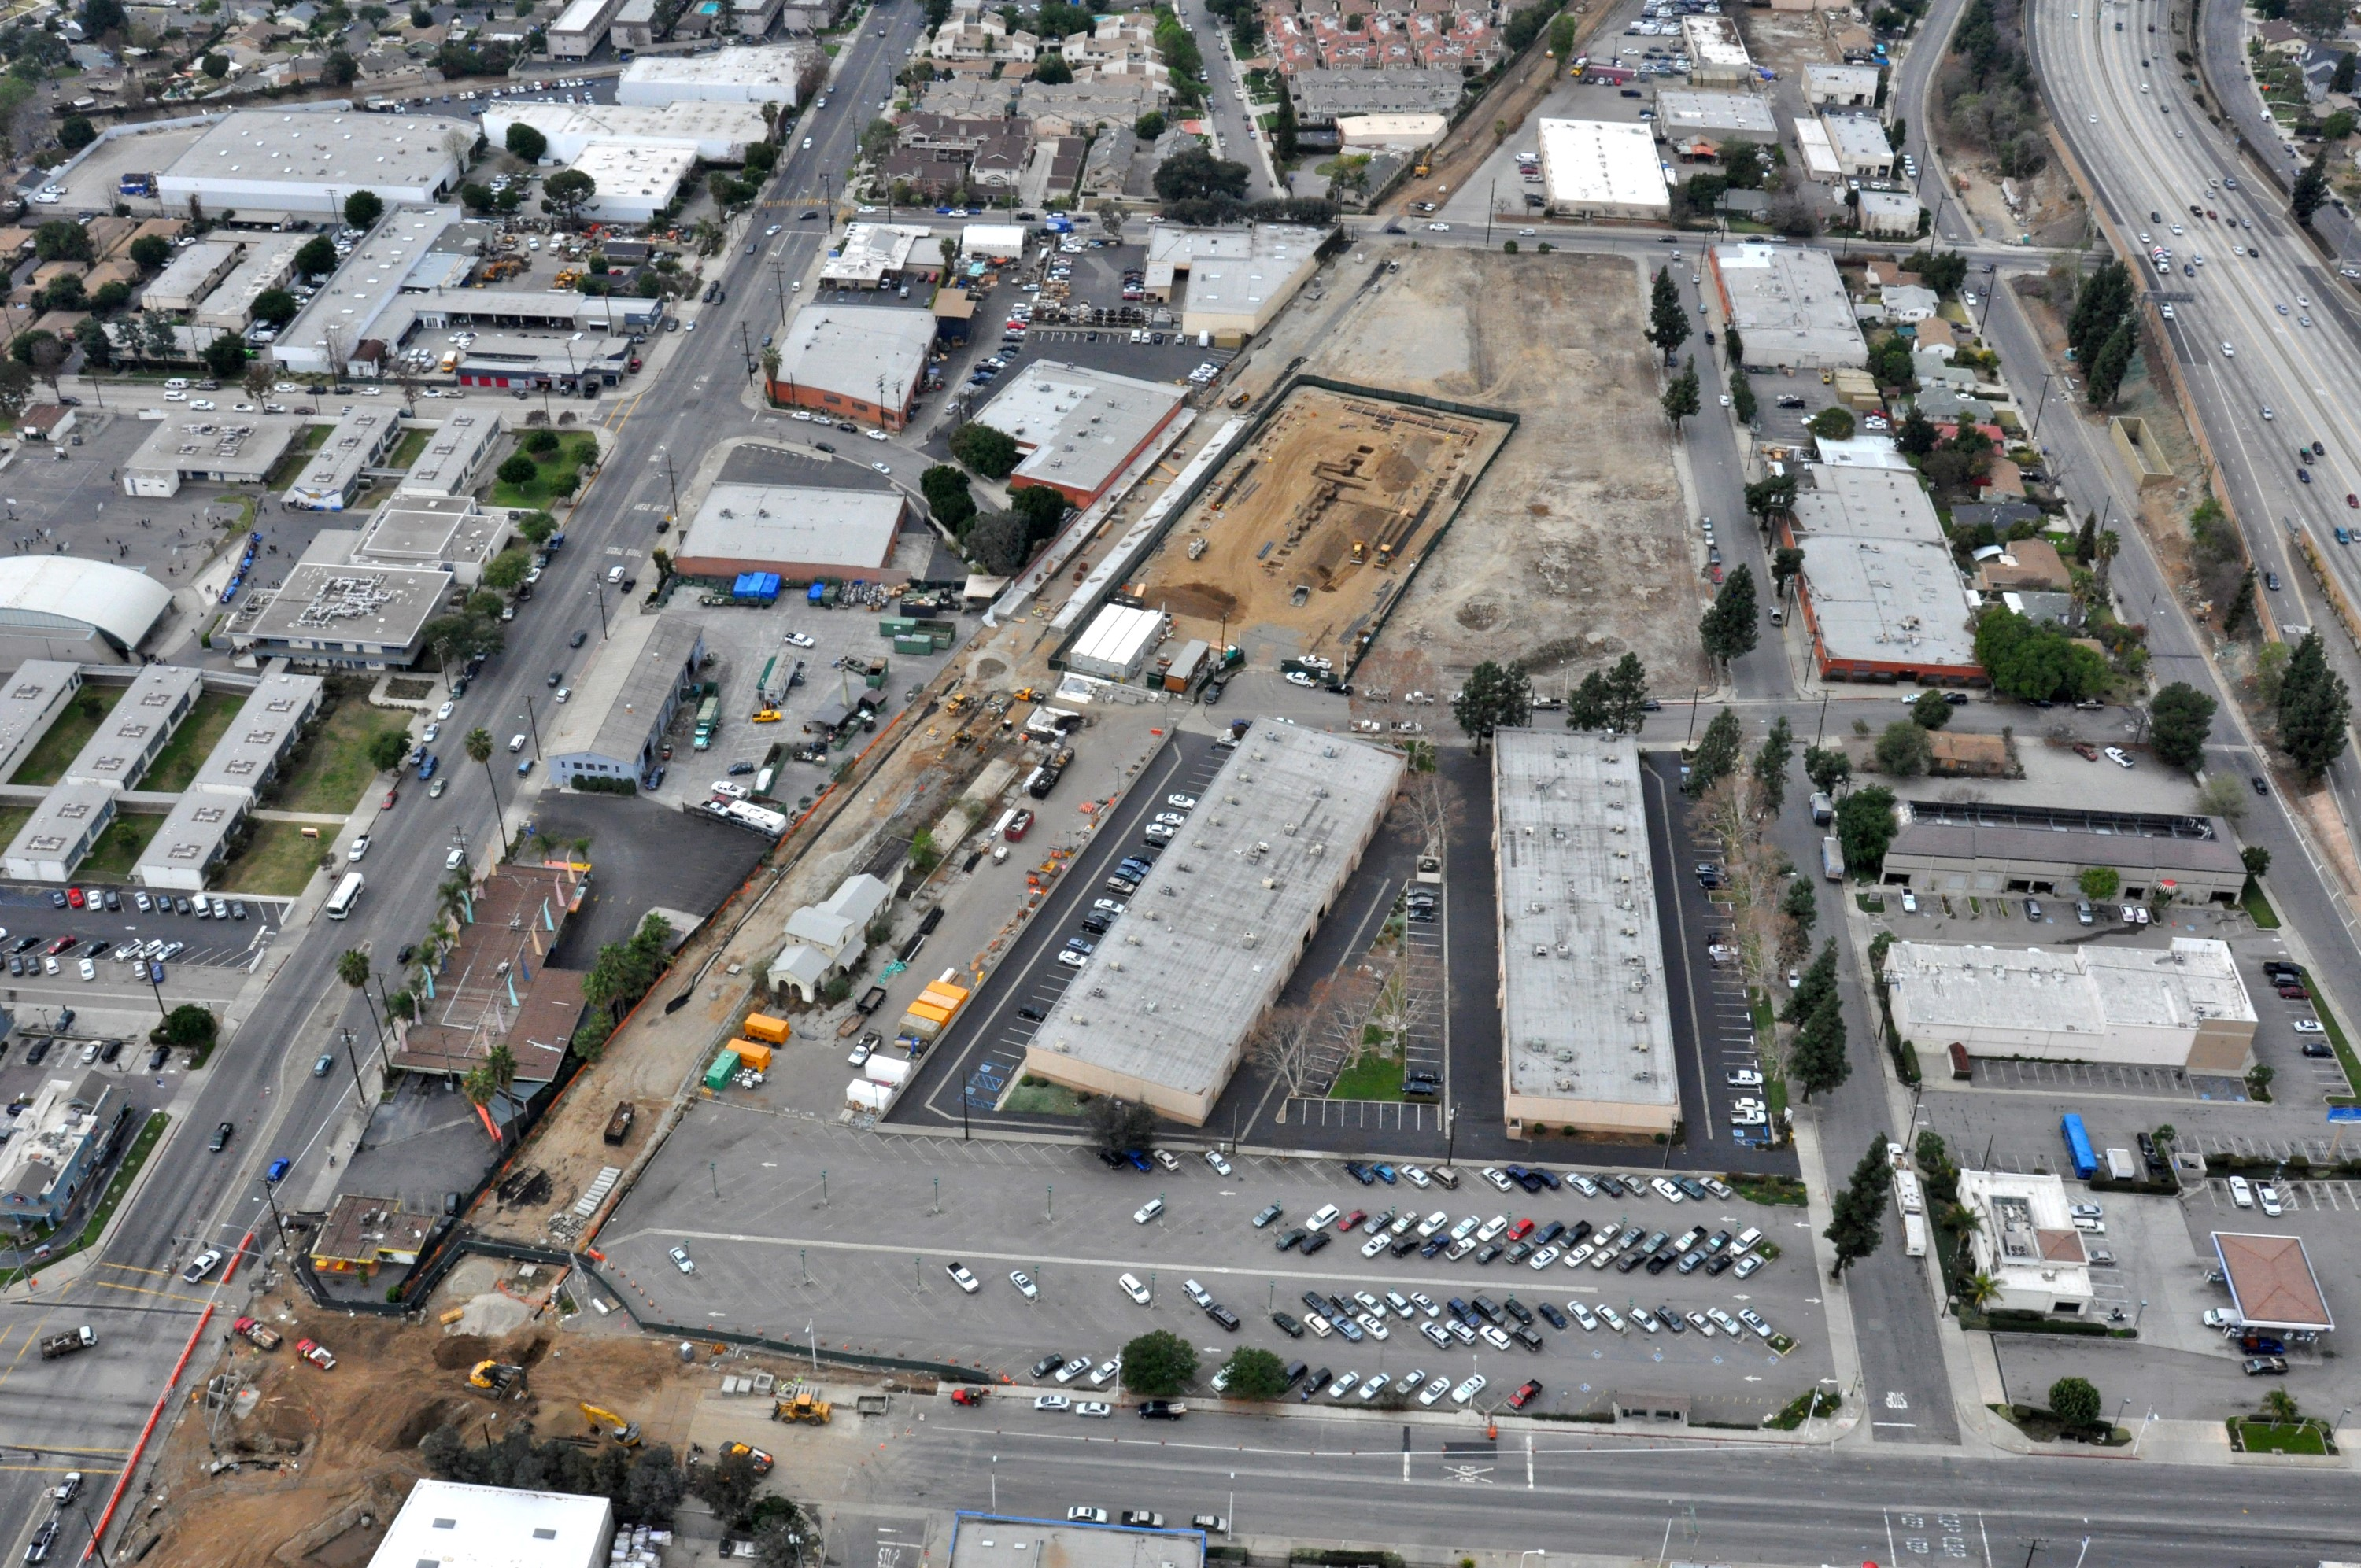 Monrovia_Station_and_Parking,_plus_Myrtle_Ave_closure